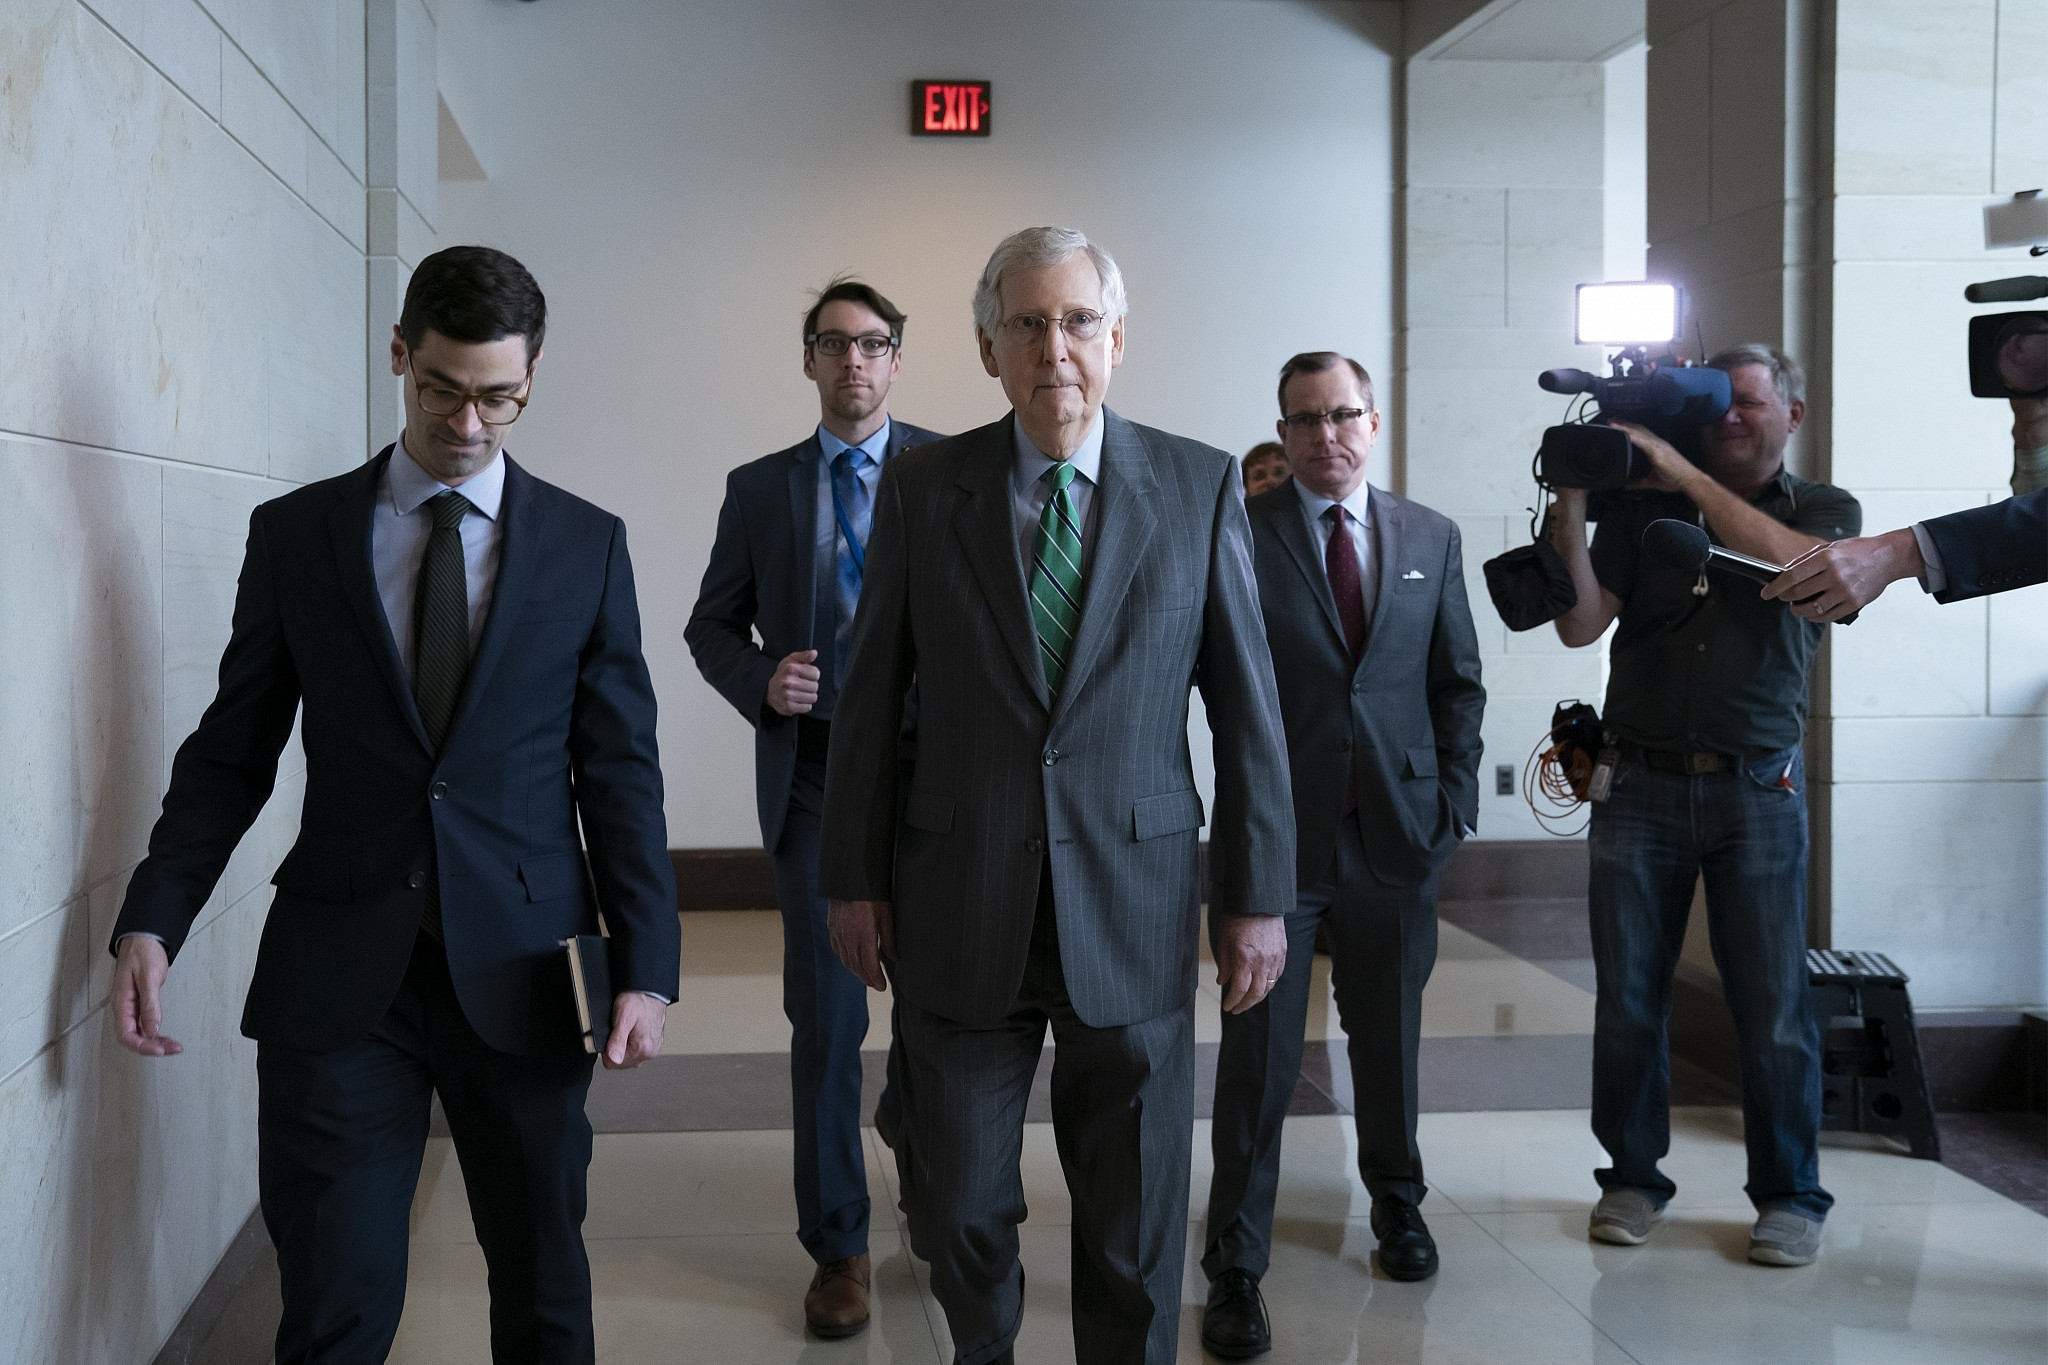 Senate Majority Leader Mitch McConnell R-Ky. passes reporters as he and other top congressional leaders head to a classified briefing on Iran after members of both parties asked for more information on the White House's claims of rising threats